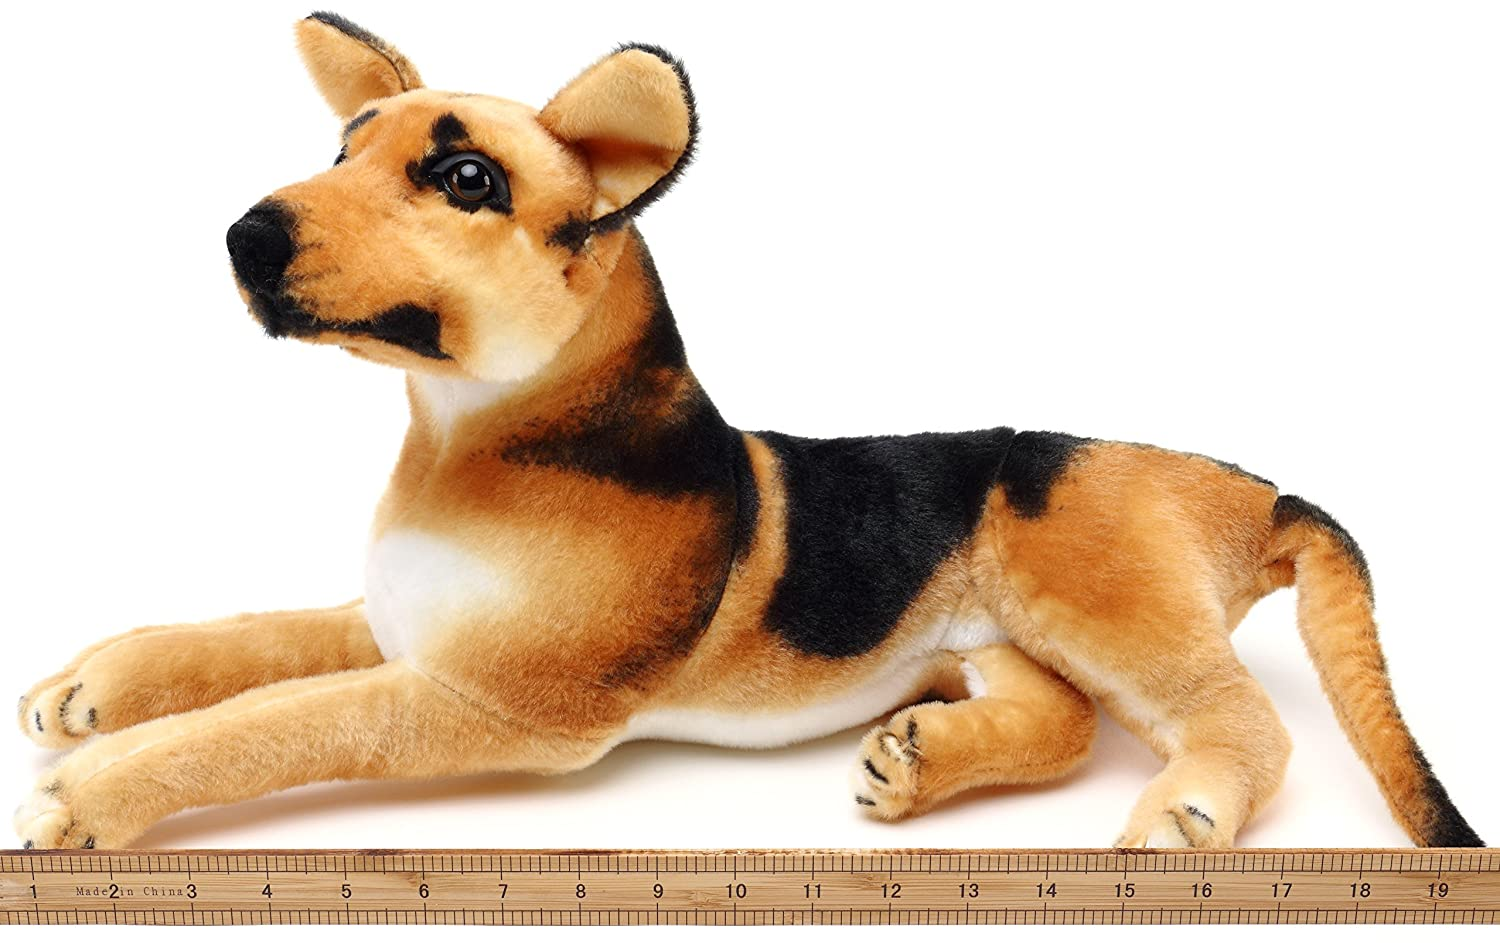 amazoncom hero the german shepherd   inch stuffed animal  - amazoncom hero the german shepherd   inch stuffed animal plush dog by tiger tale toys toys  games